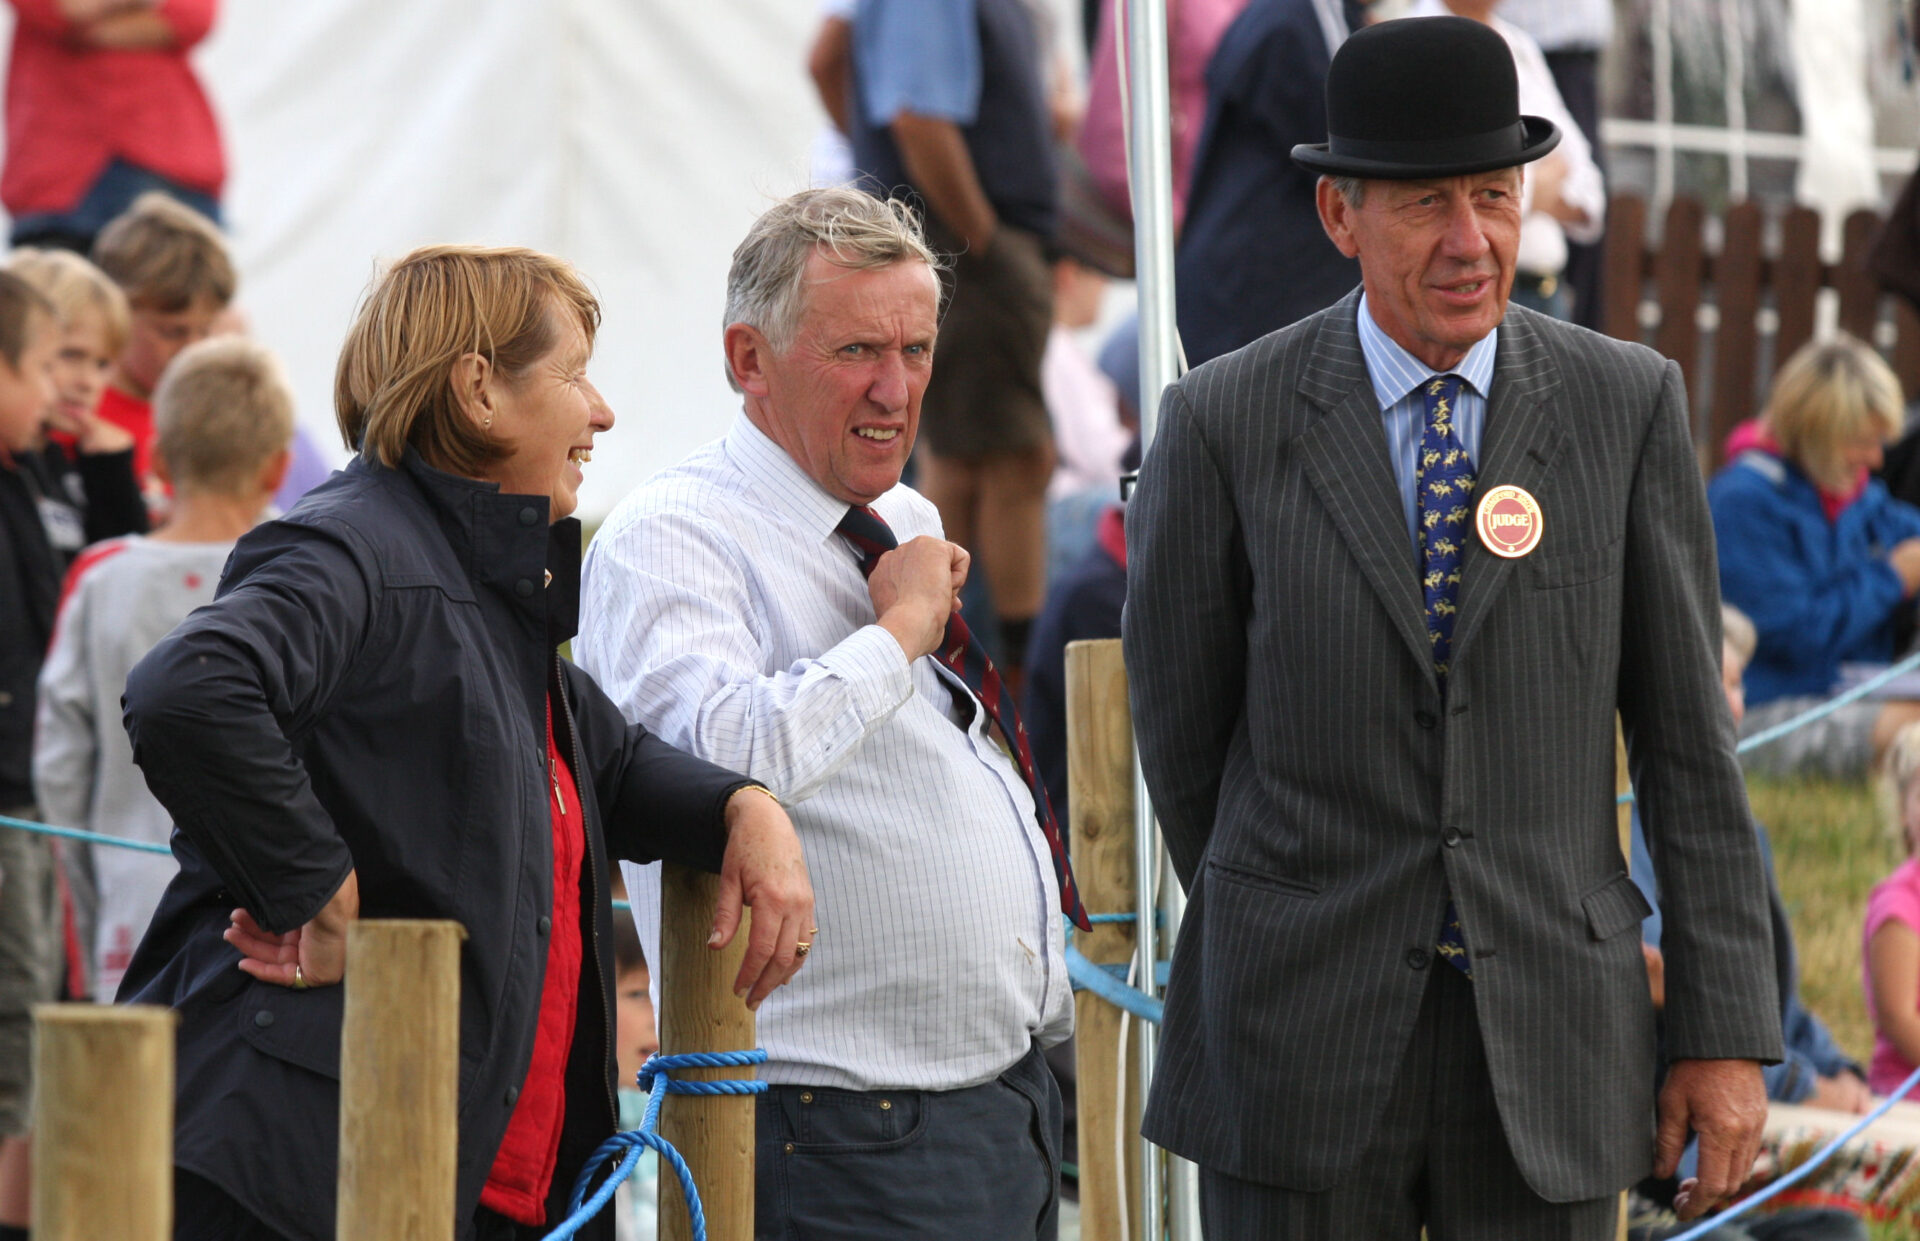 Chagford Show wouldn't be Chagford Show without Diane and John having a natter with the Judges.